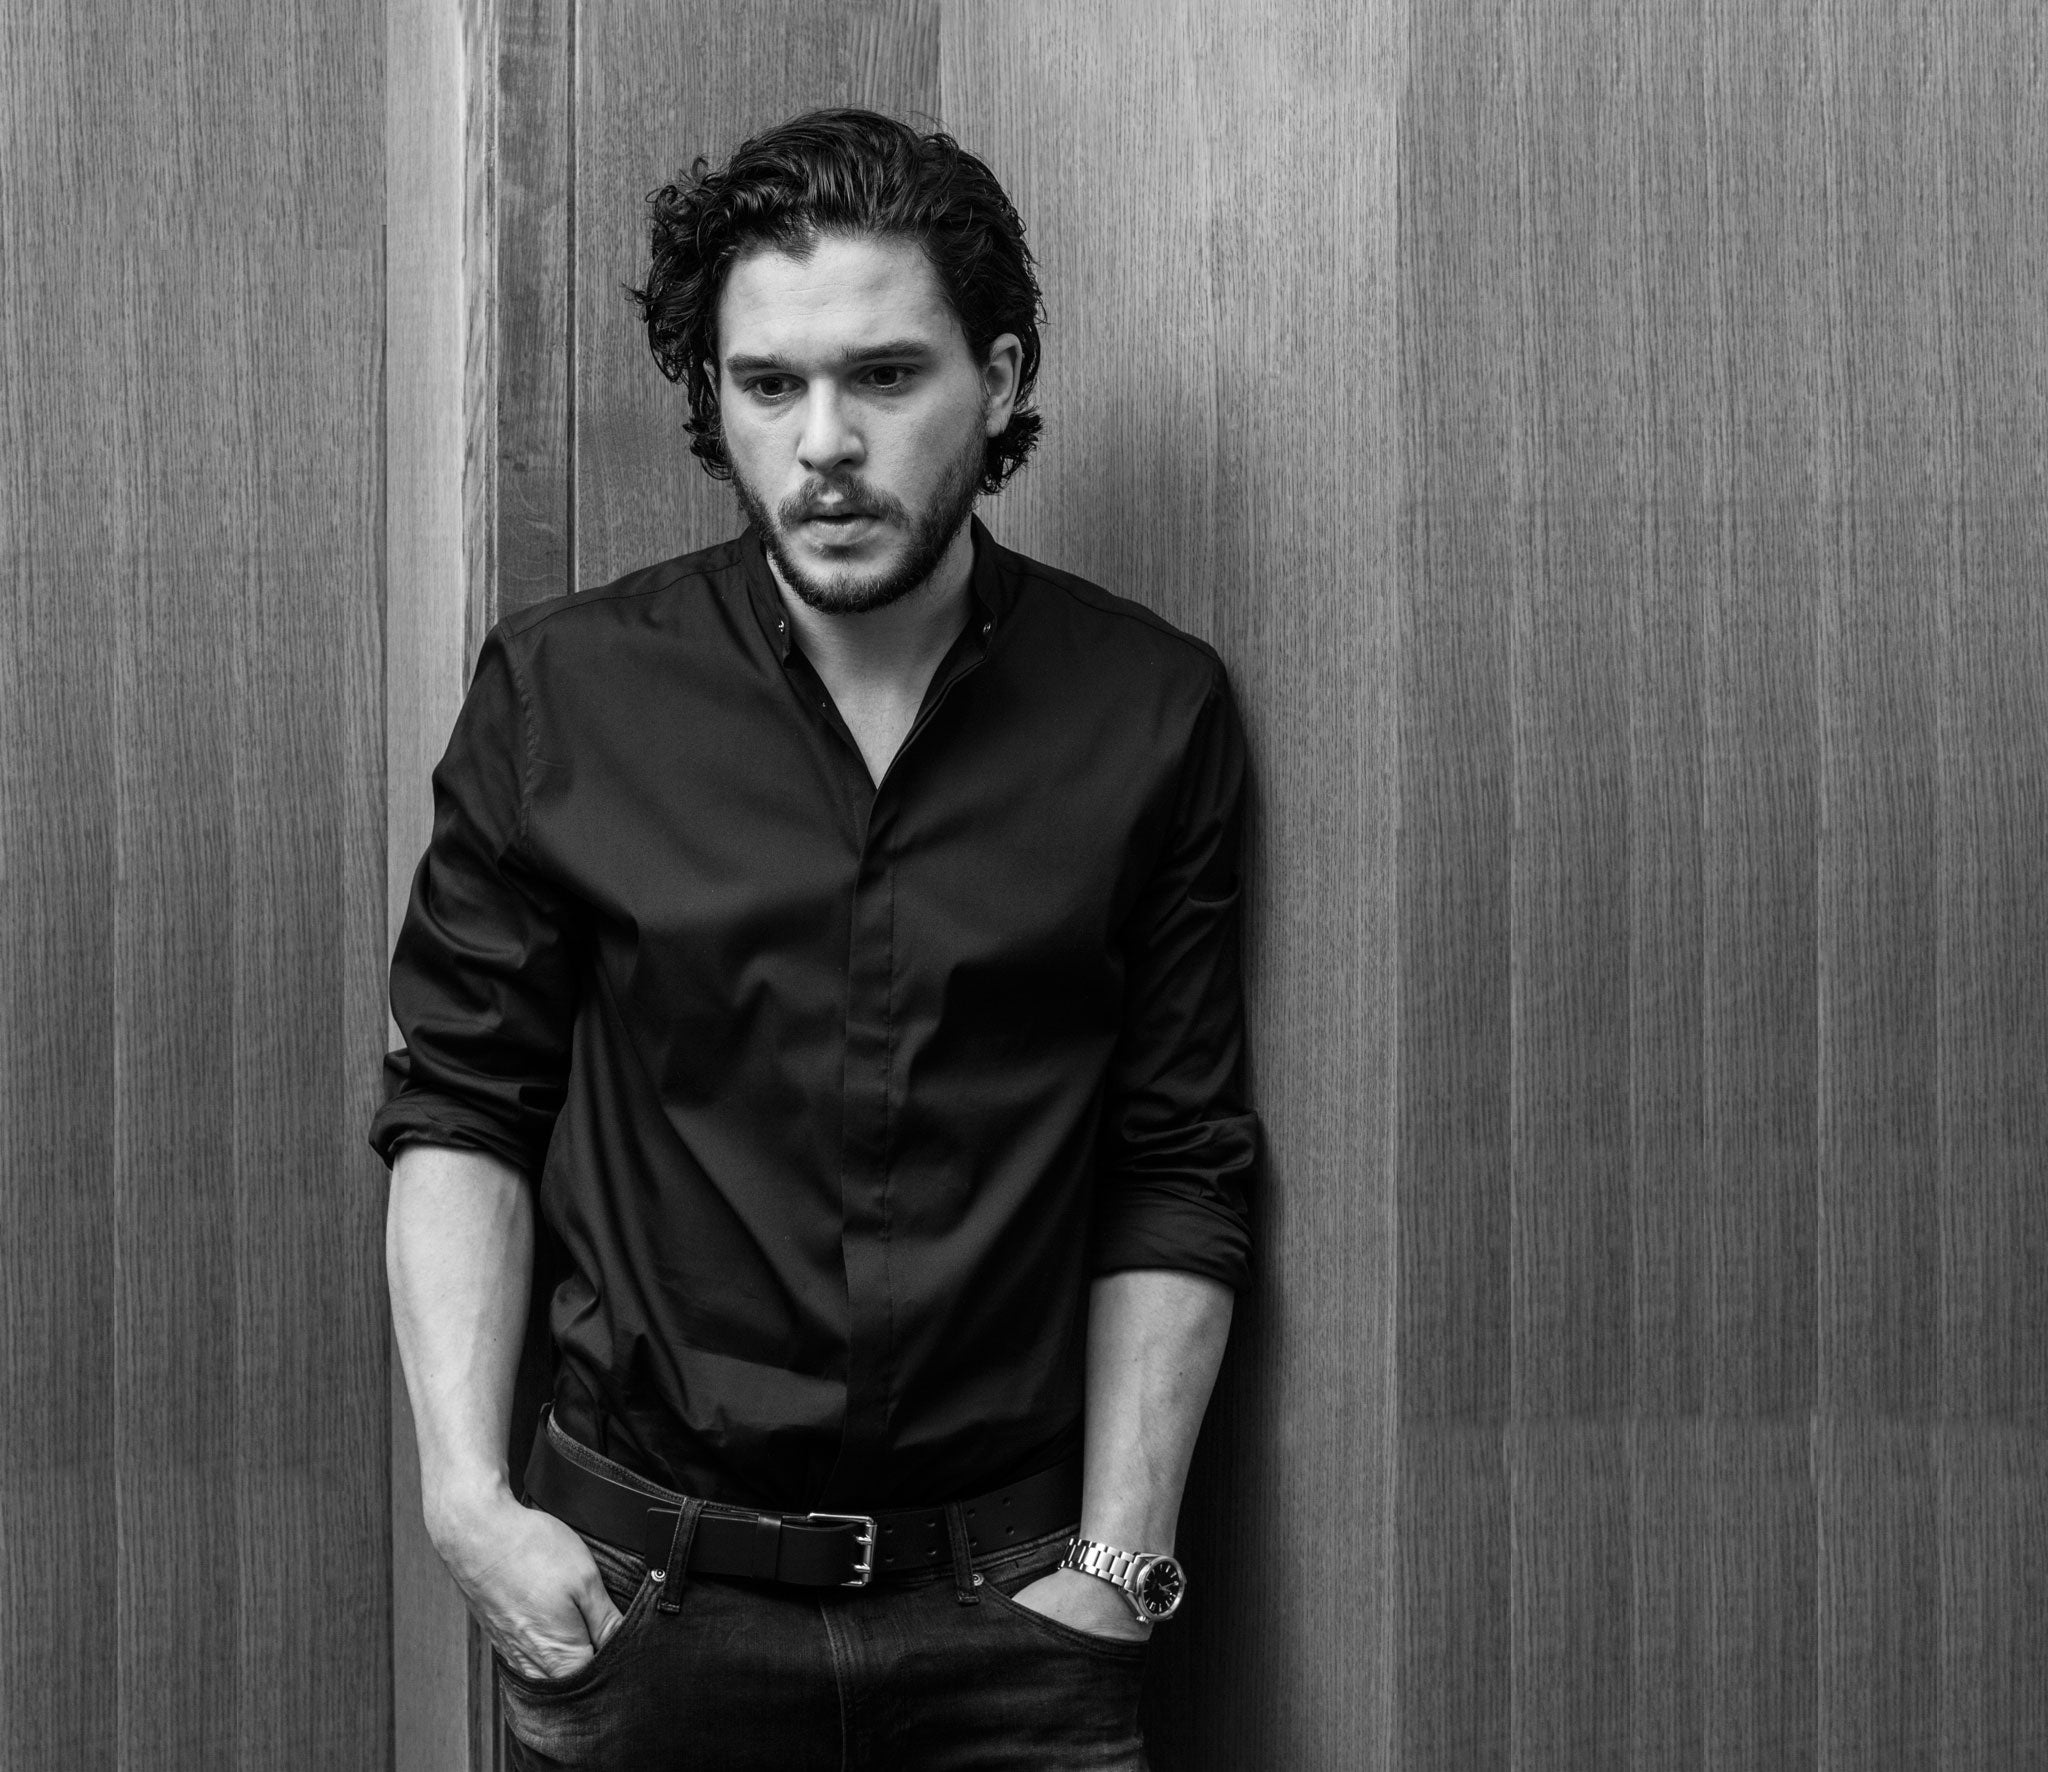 Kit Harington: Kit Harington Interview: This Game Of Thrones Heartthrob